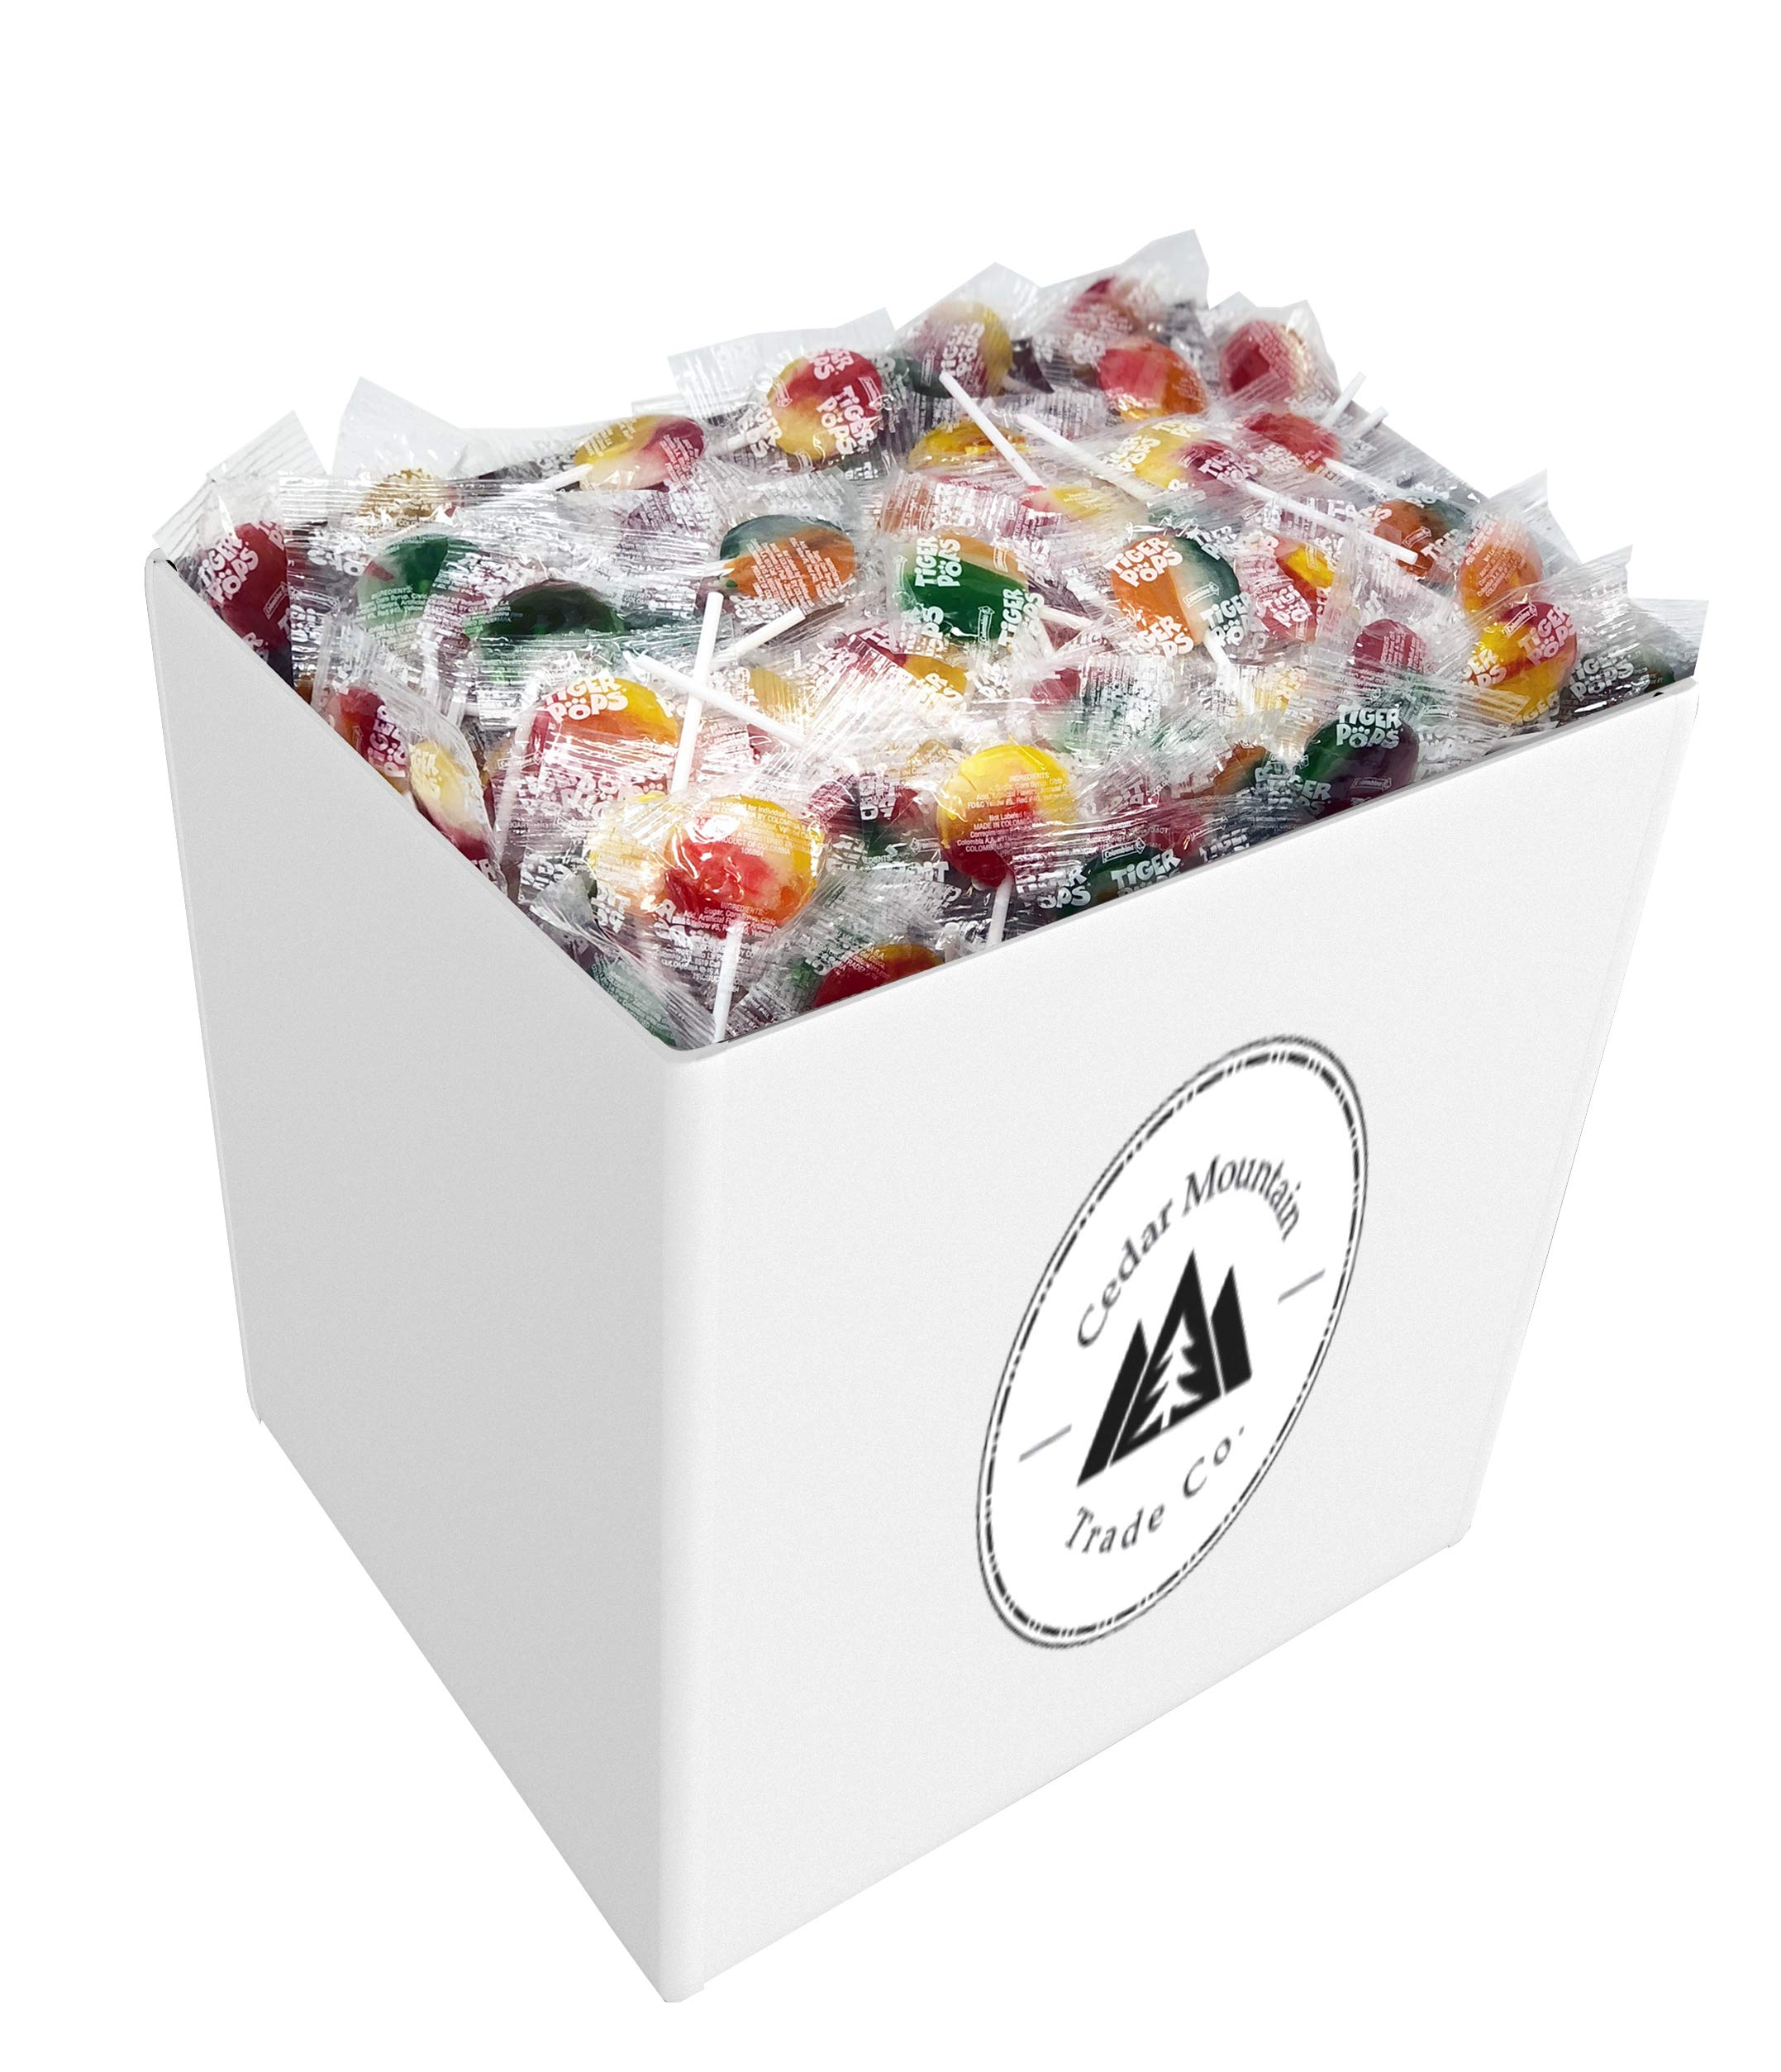 Bulk Lollipops - 5lbs of Assorted Flavors of Mixed Fruit Suckers - Bulk Candy, Great for Office, Bank, School, Kids, and Adults Who Want the Finest Swirl Lollipop Candy by Cedar Mountain Trade Co.